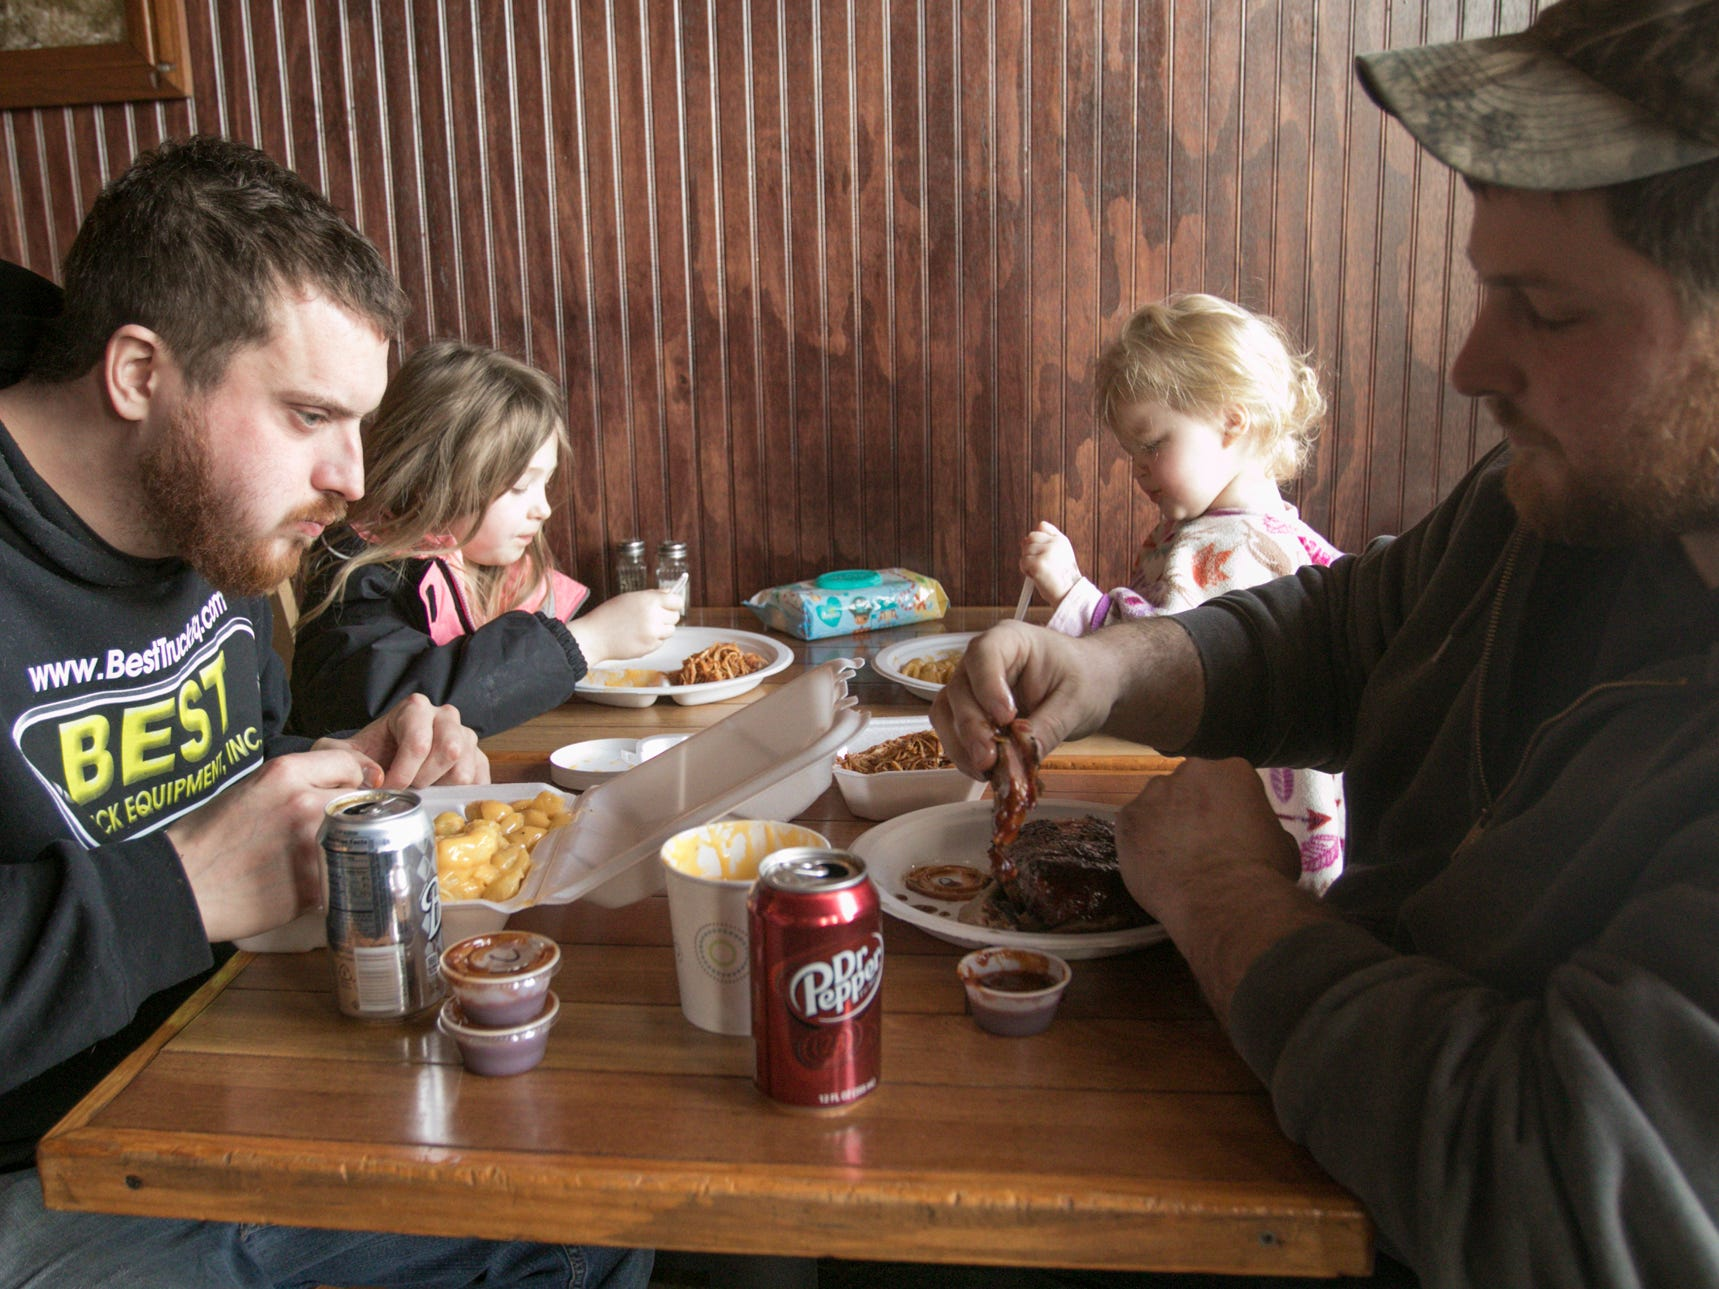 From left, Josh Moreau, Carley Bylski, Lilah Parker and Carley and Liliah's father Daren Parker enjoy a meal at Hotel Hickman Chuckwagon BBQ Friday, March 1, 2019.